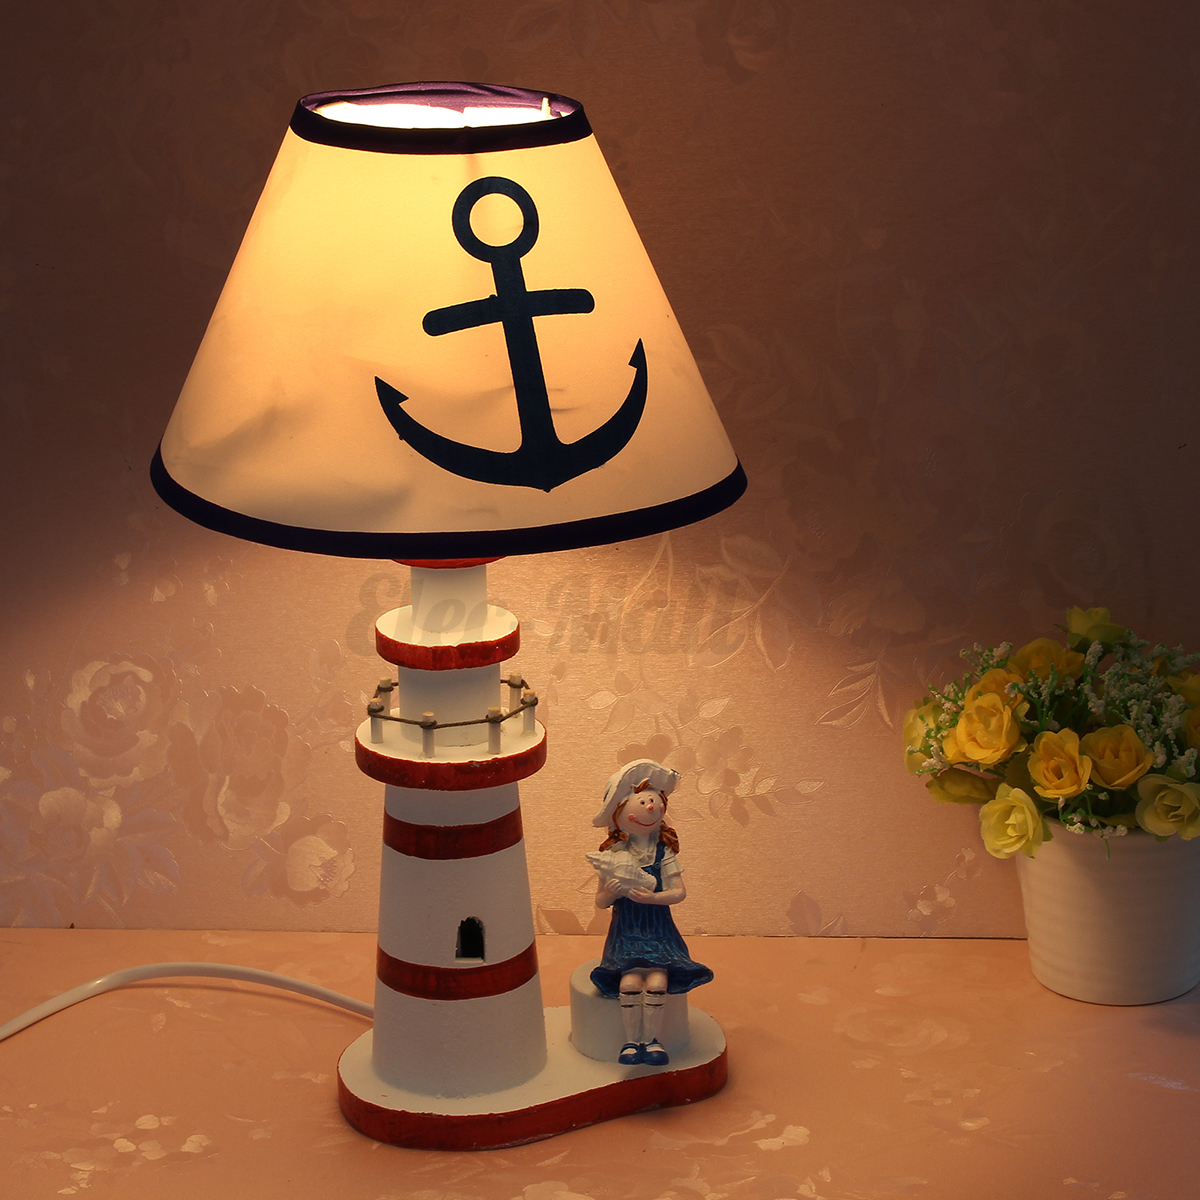 Nautical Lighthouse Desk Lamp Bedside Decor Study Light. Desk Antique. 2.5 Center To Center Drawer Pulls. Game Table Set. Exercise Desk Bike. Used Manicure Tables. Card Tables With Chairs. Centerpiece For Dining Table. Mid Century Table Lamp